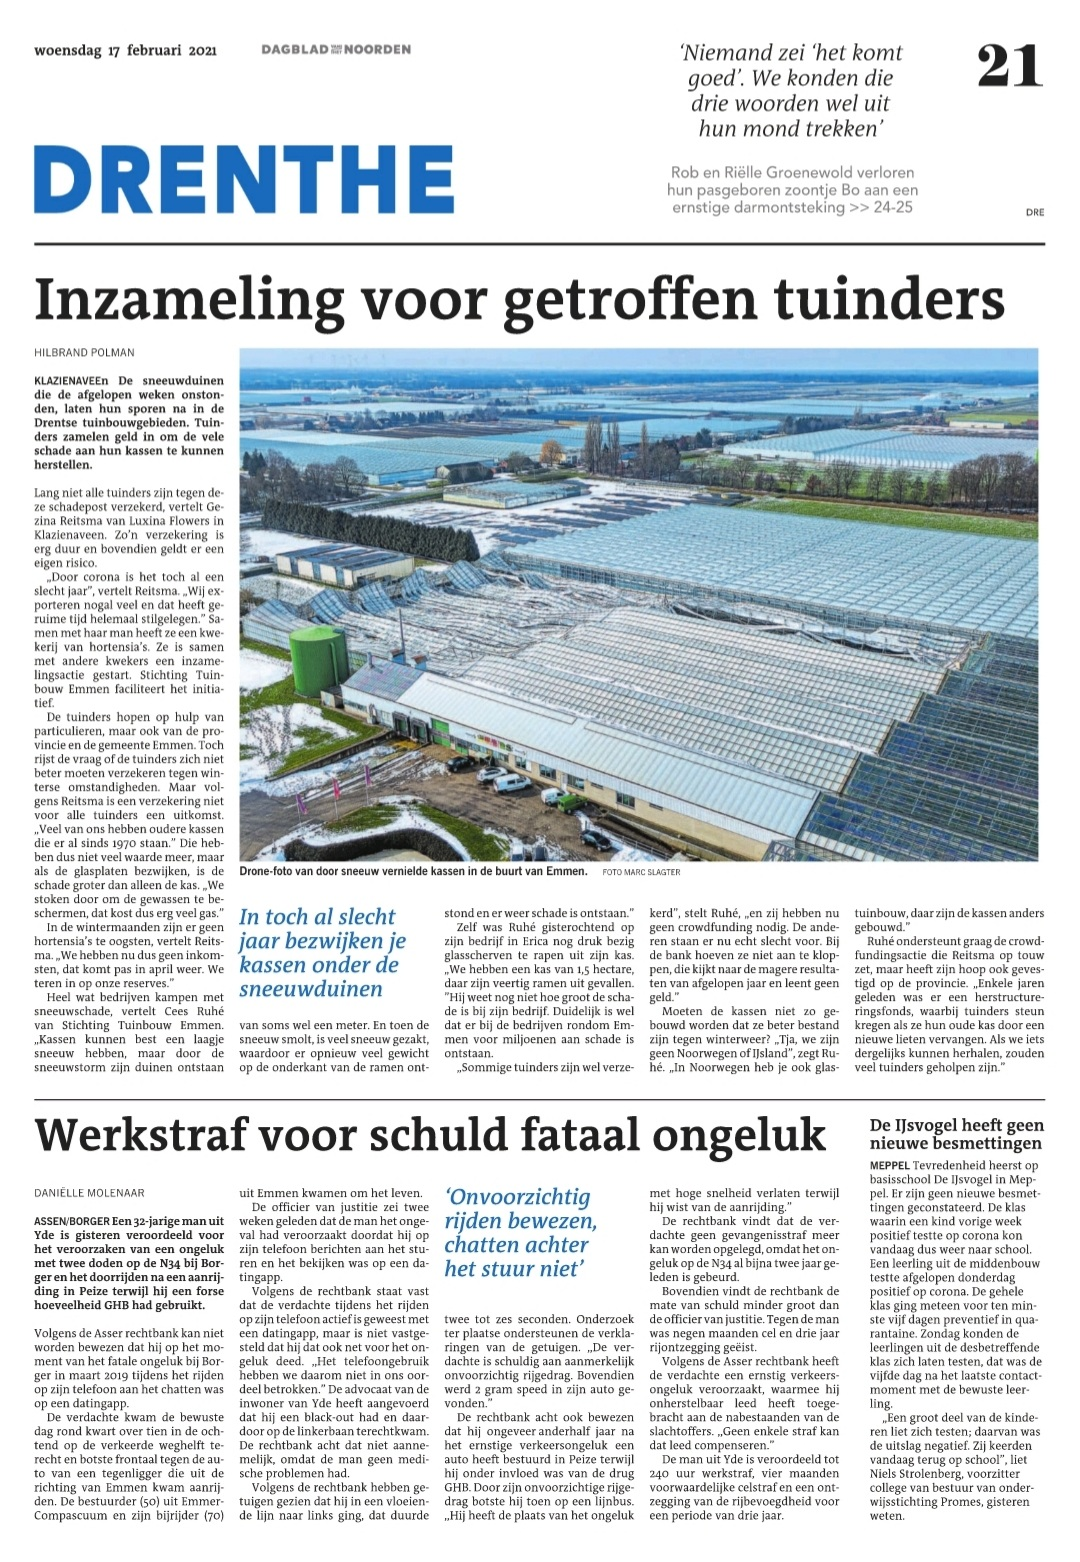 Screenshot_20210217-083809_DVHN Krant